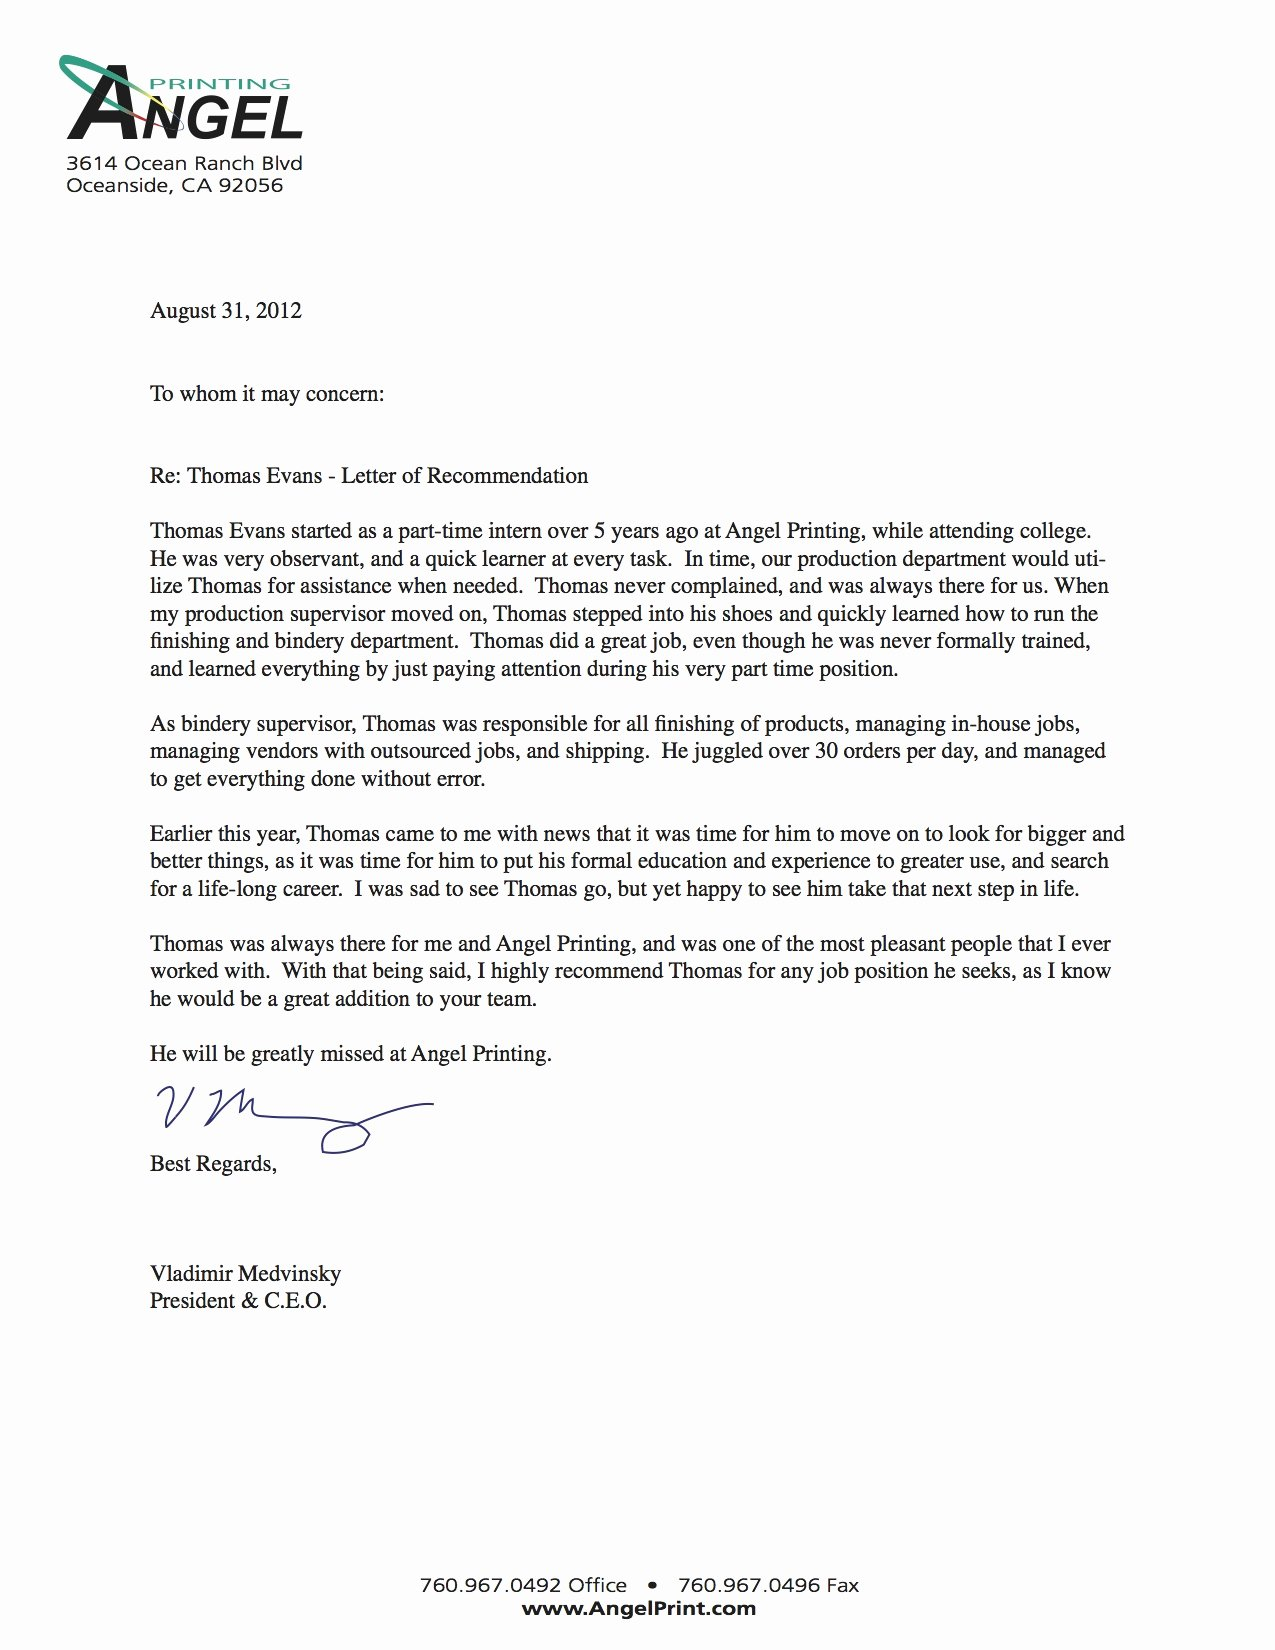 Letter Of Recommendation Template Fresh Tips for Writing A Letter Of Re Mendation